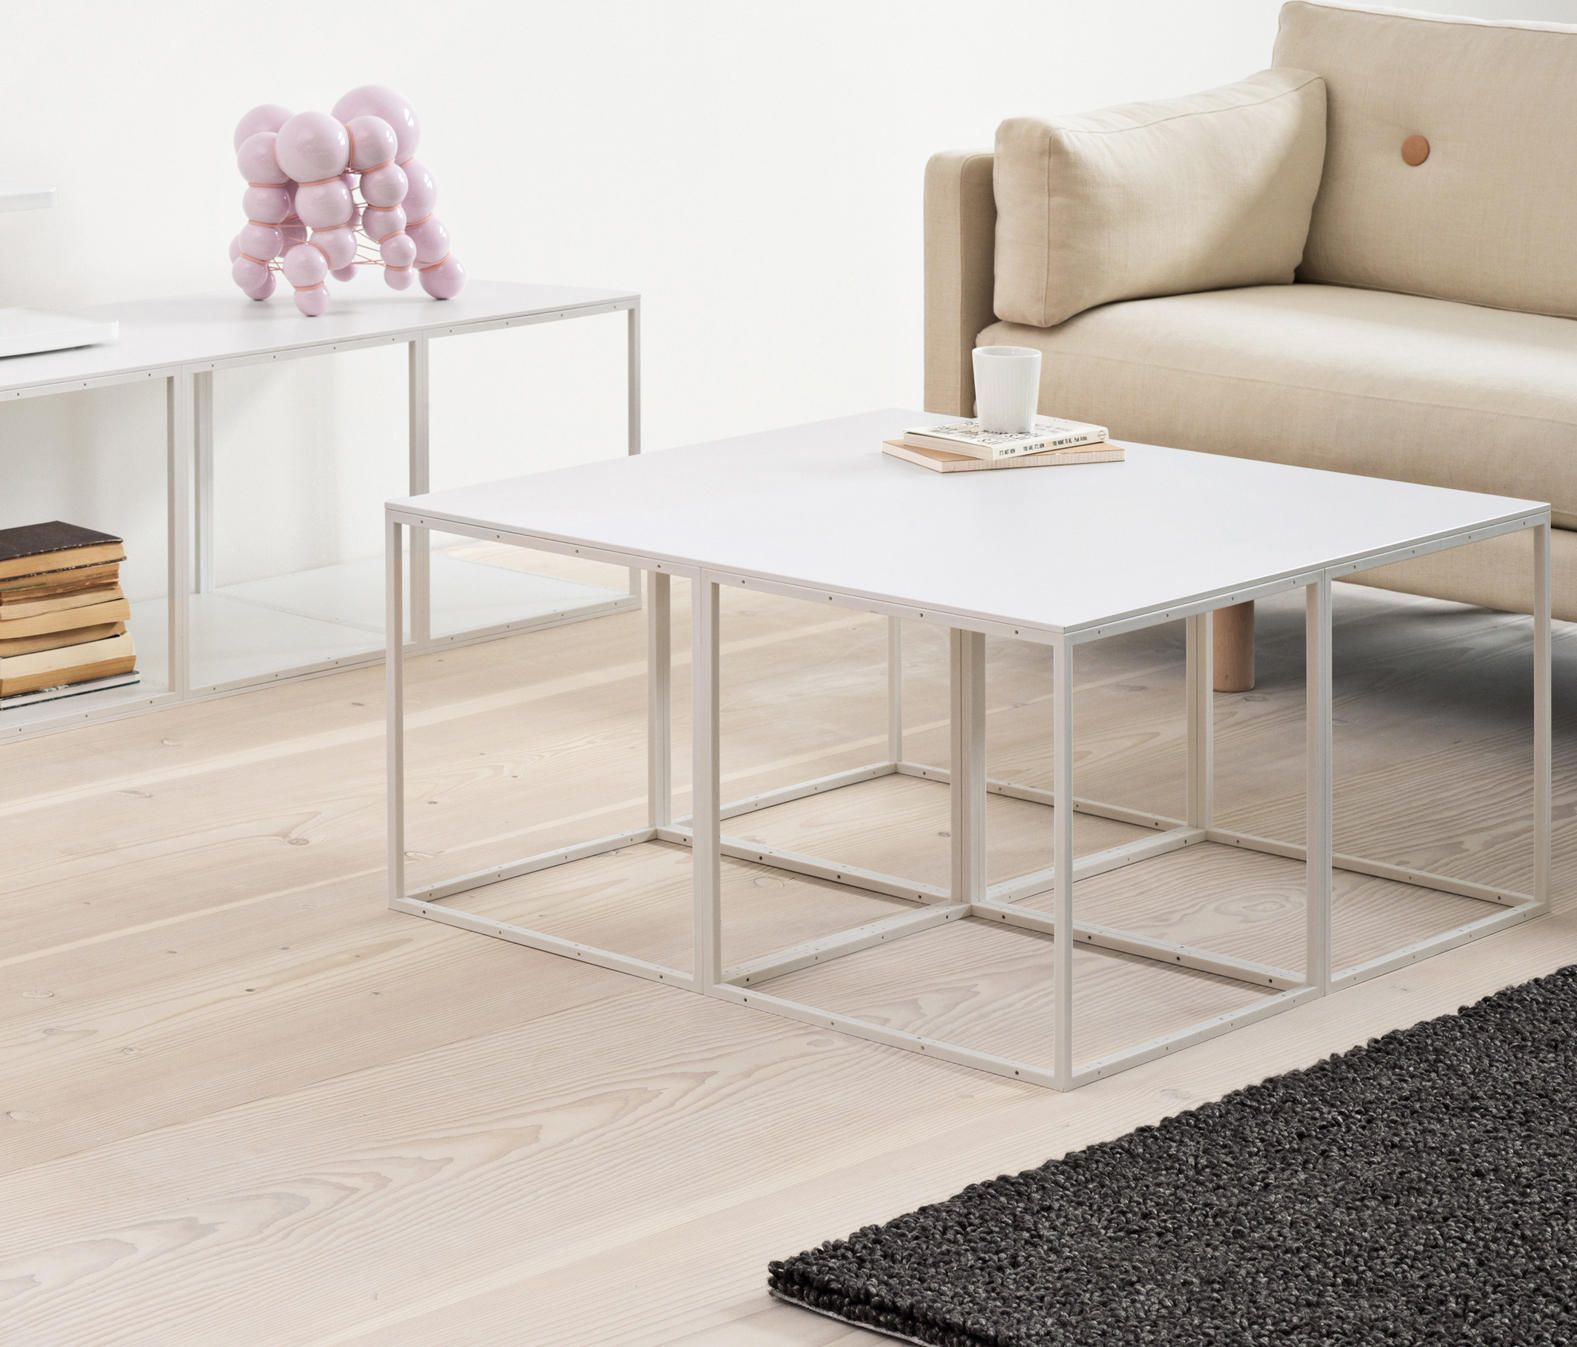 GRID TABLE - Designer Lounge tables from GRID System ApS ✓ all ...